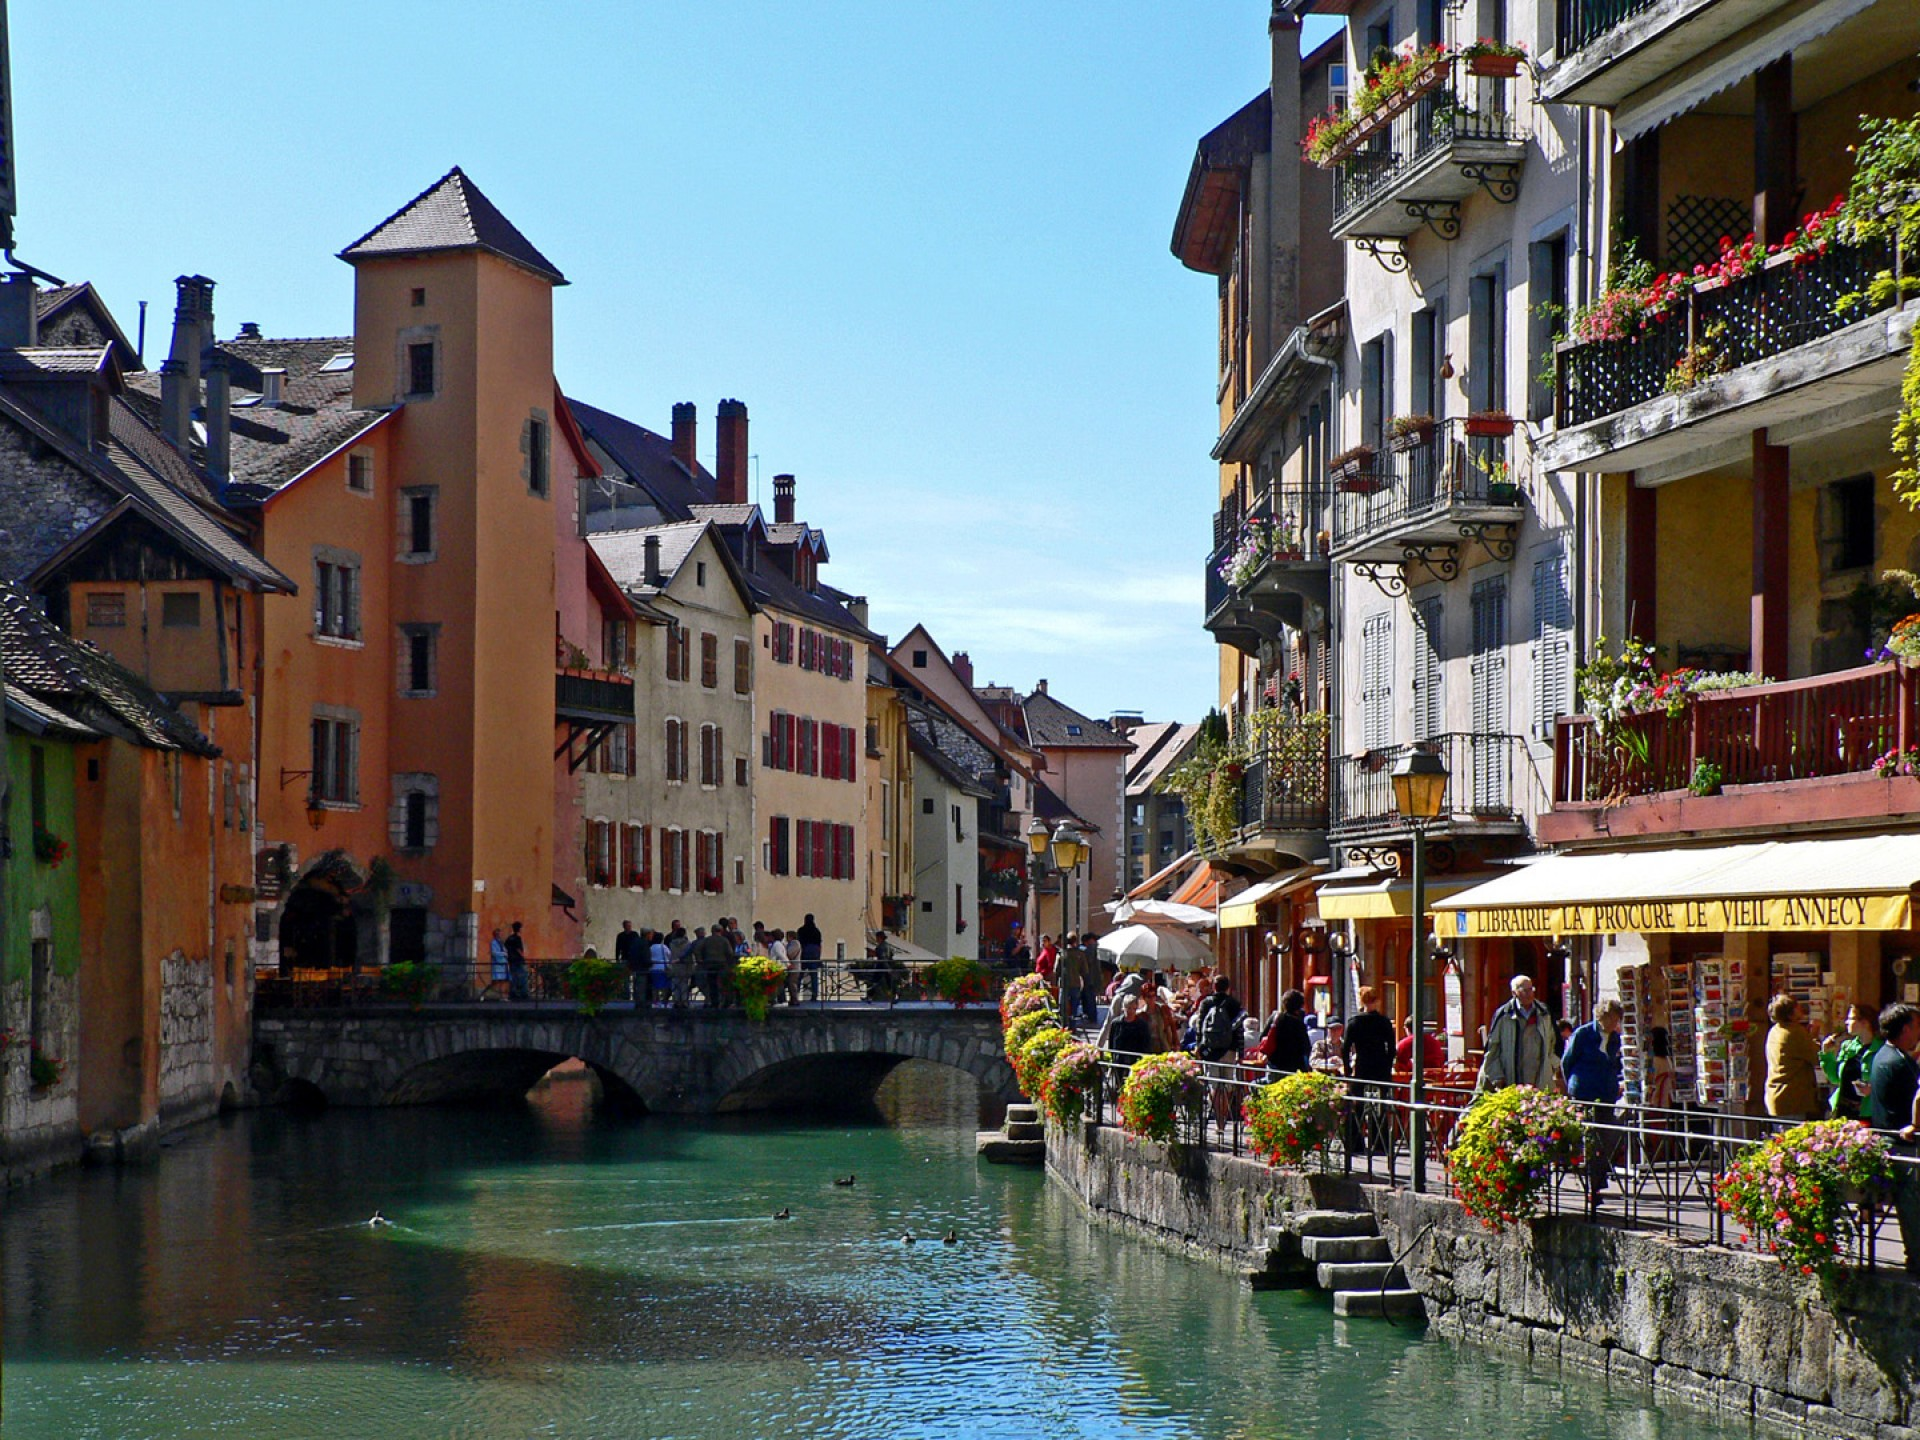 canaux-vieille-ville-annecy